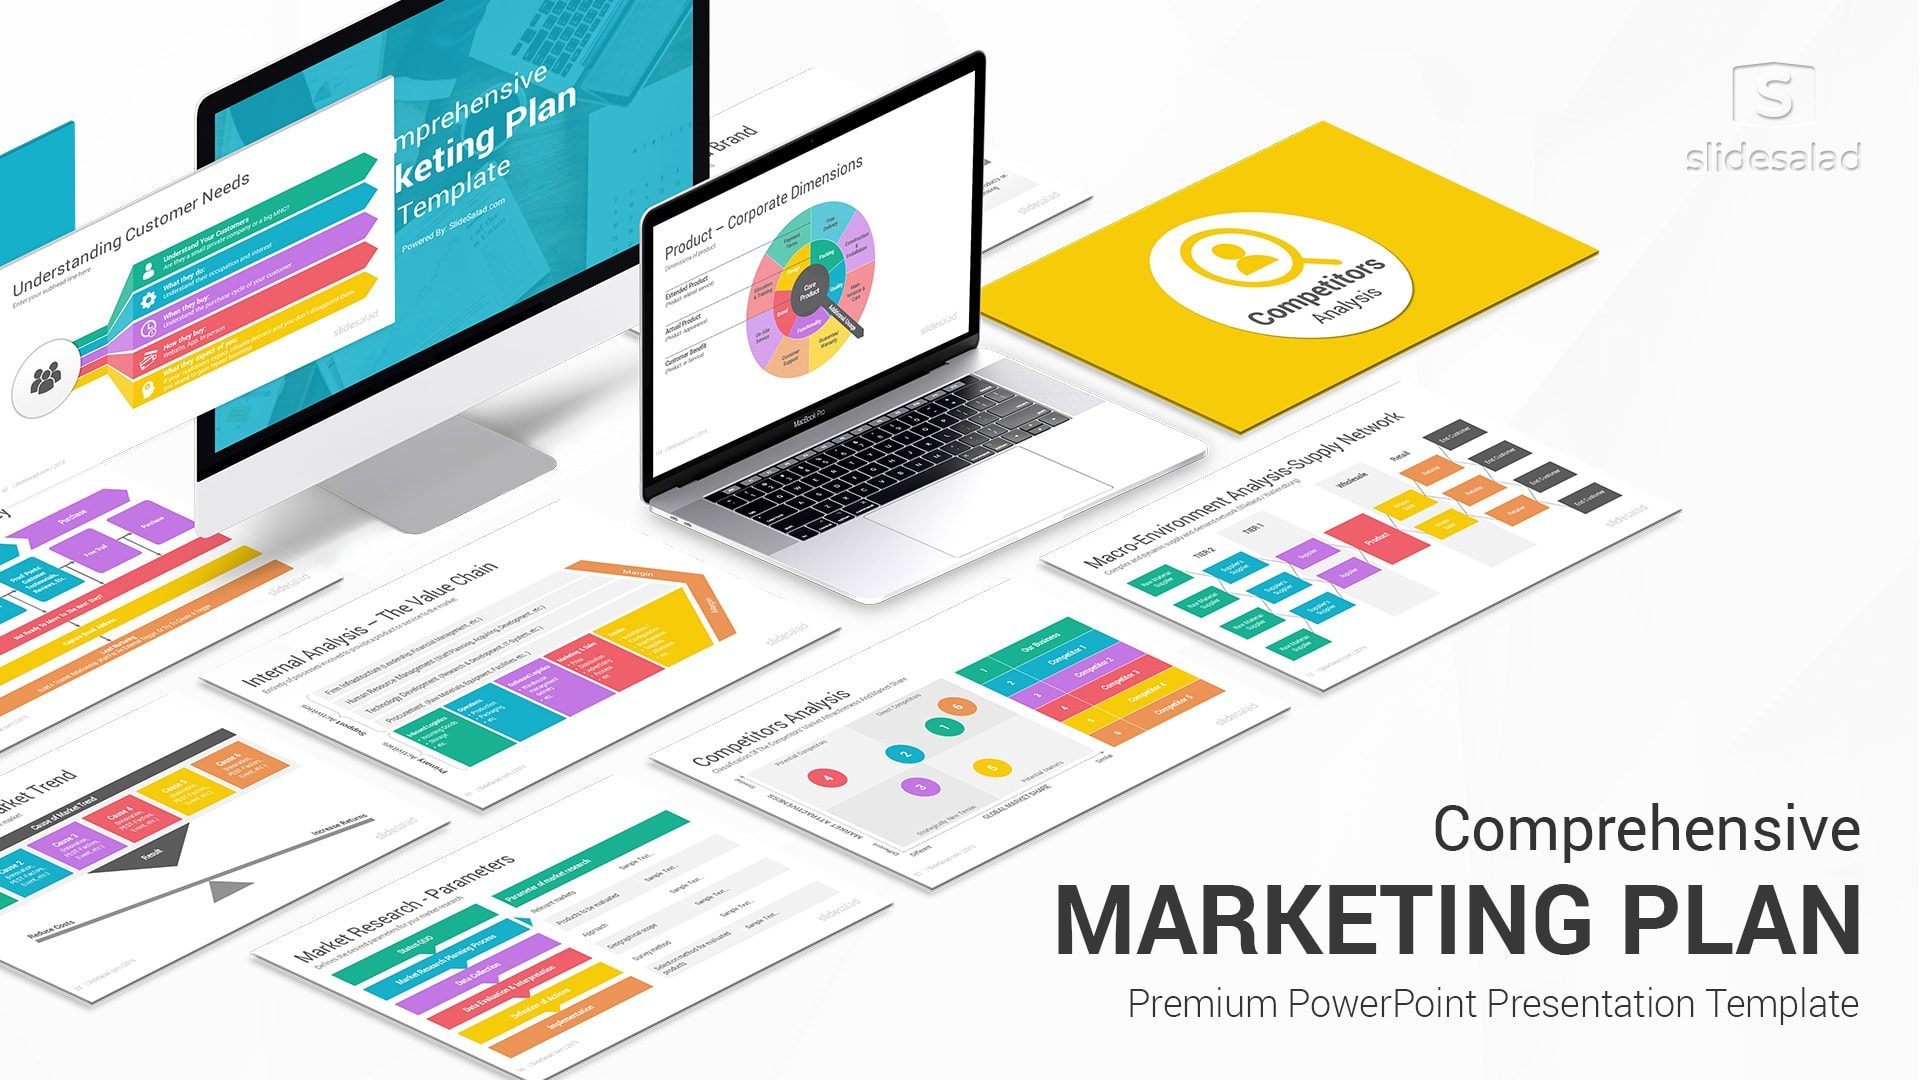 Best Corporate Powerpoint Templates For 2020 Slidesalad